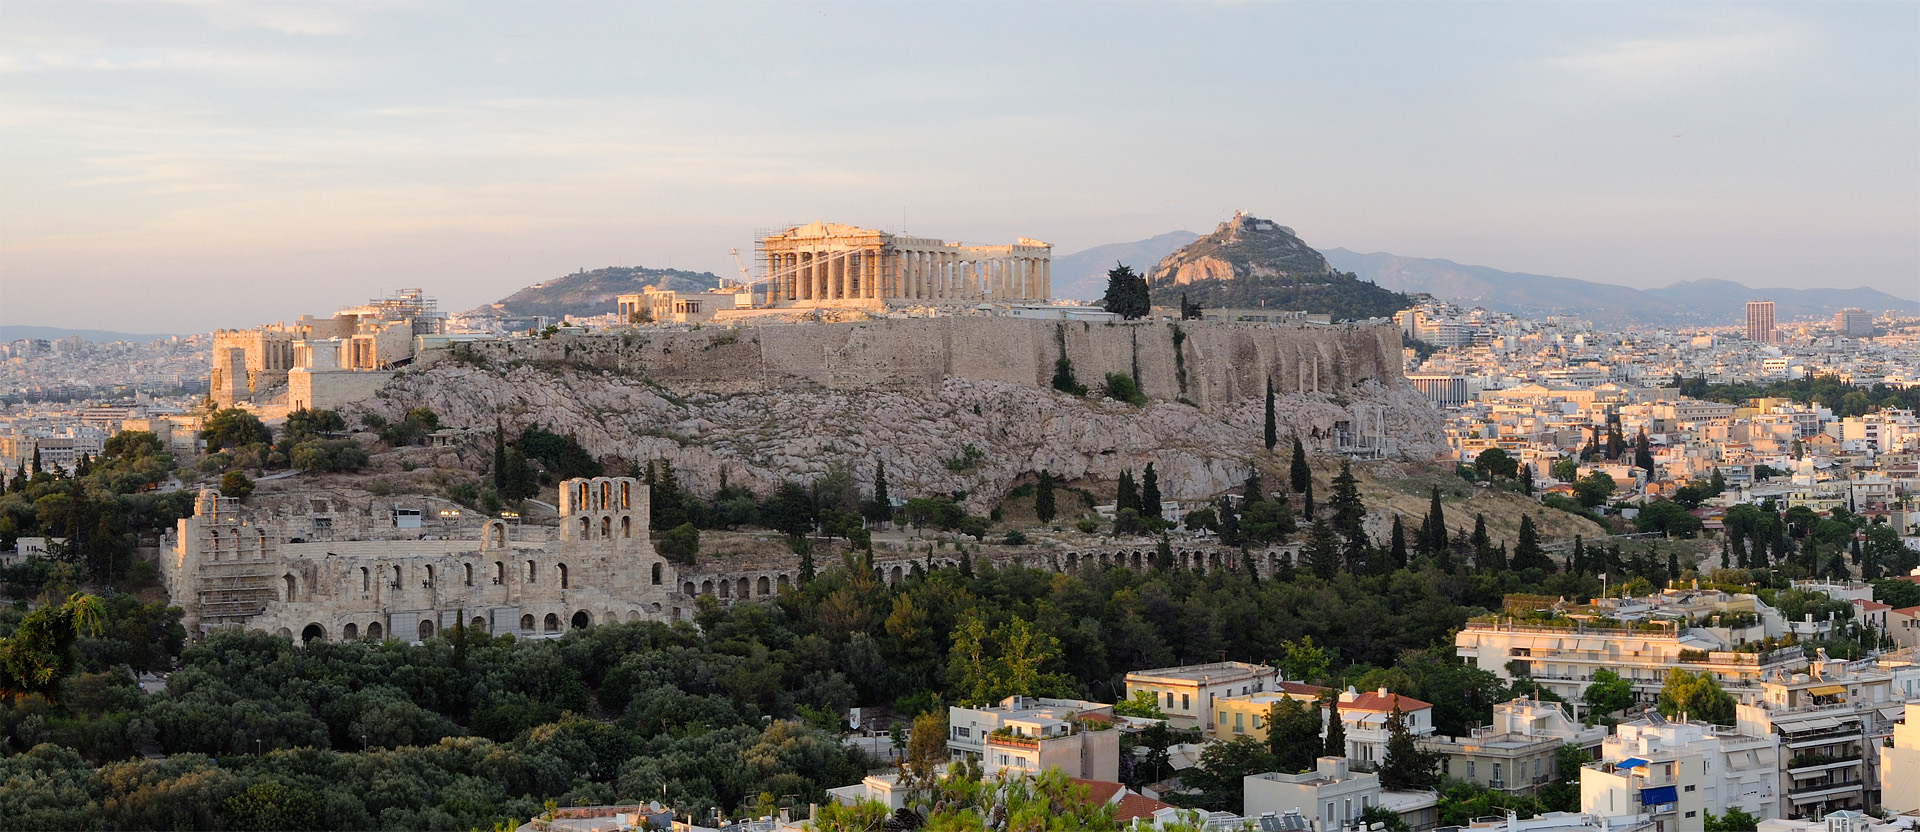 The Acropolis in Athens, Greece. » Banking Technology